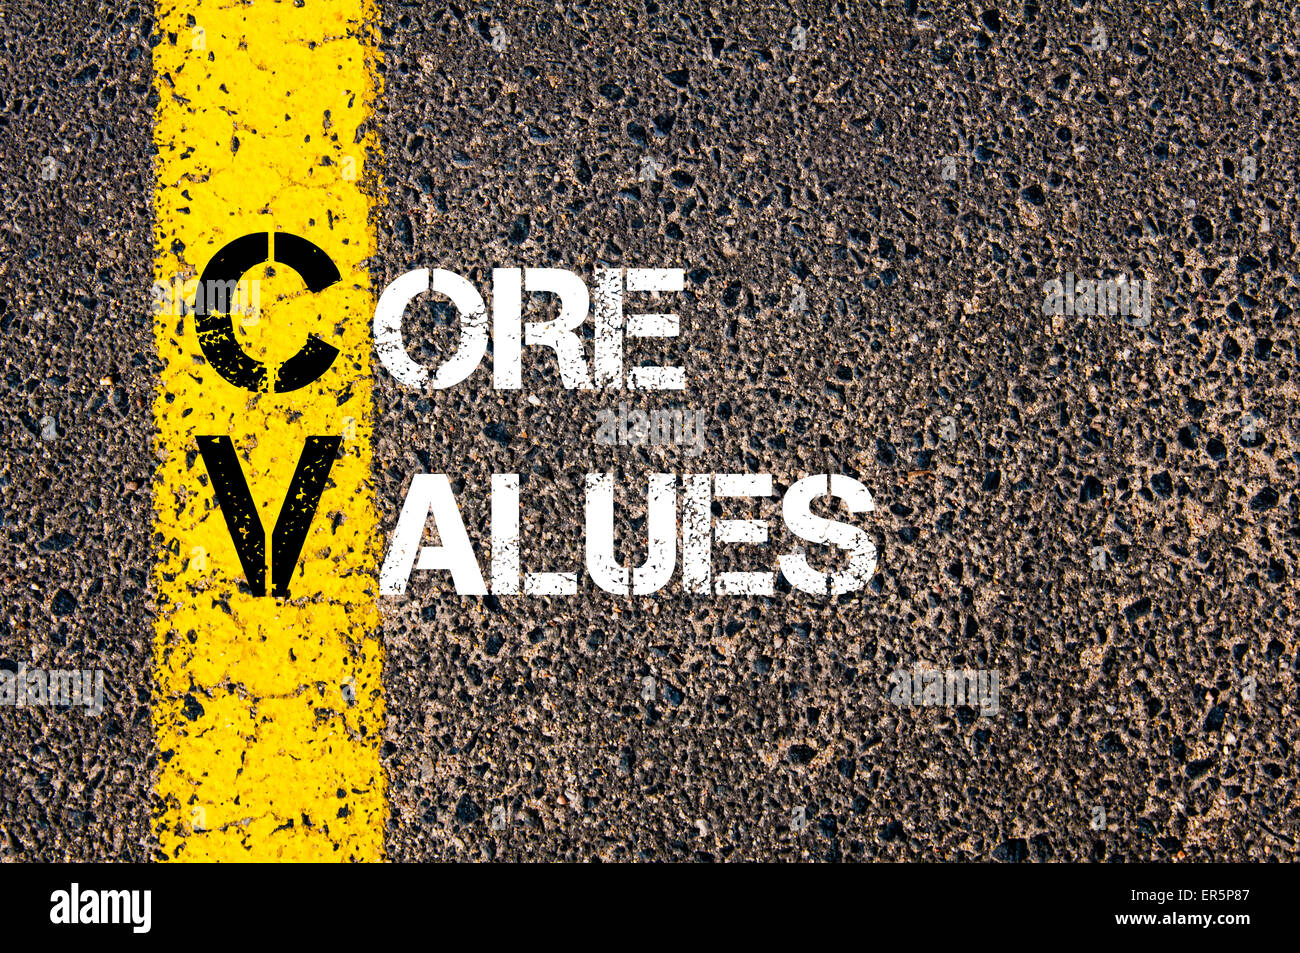 concept image of business acronym cv as core values written over